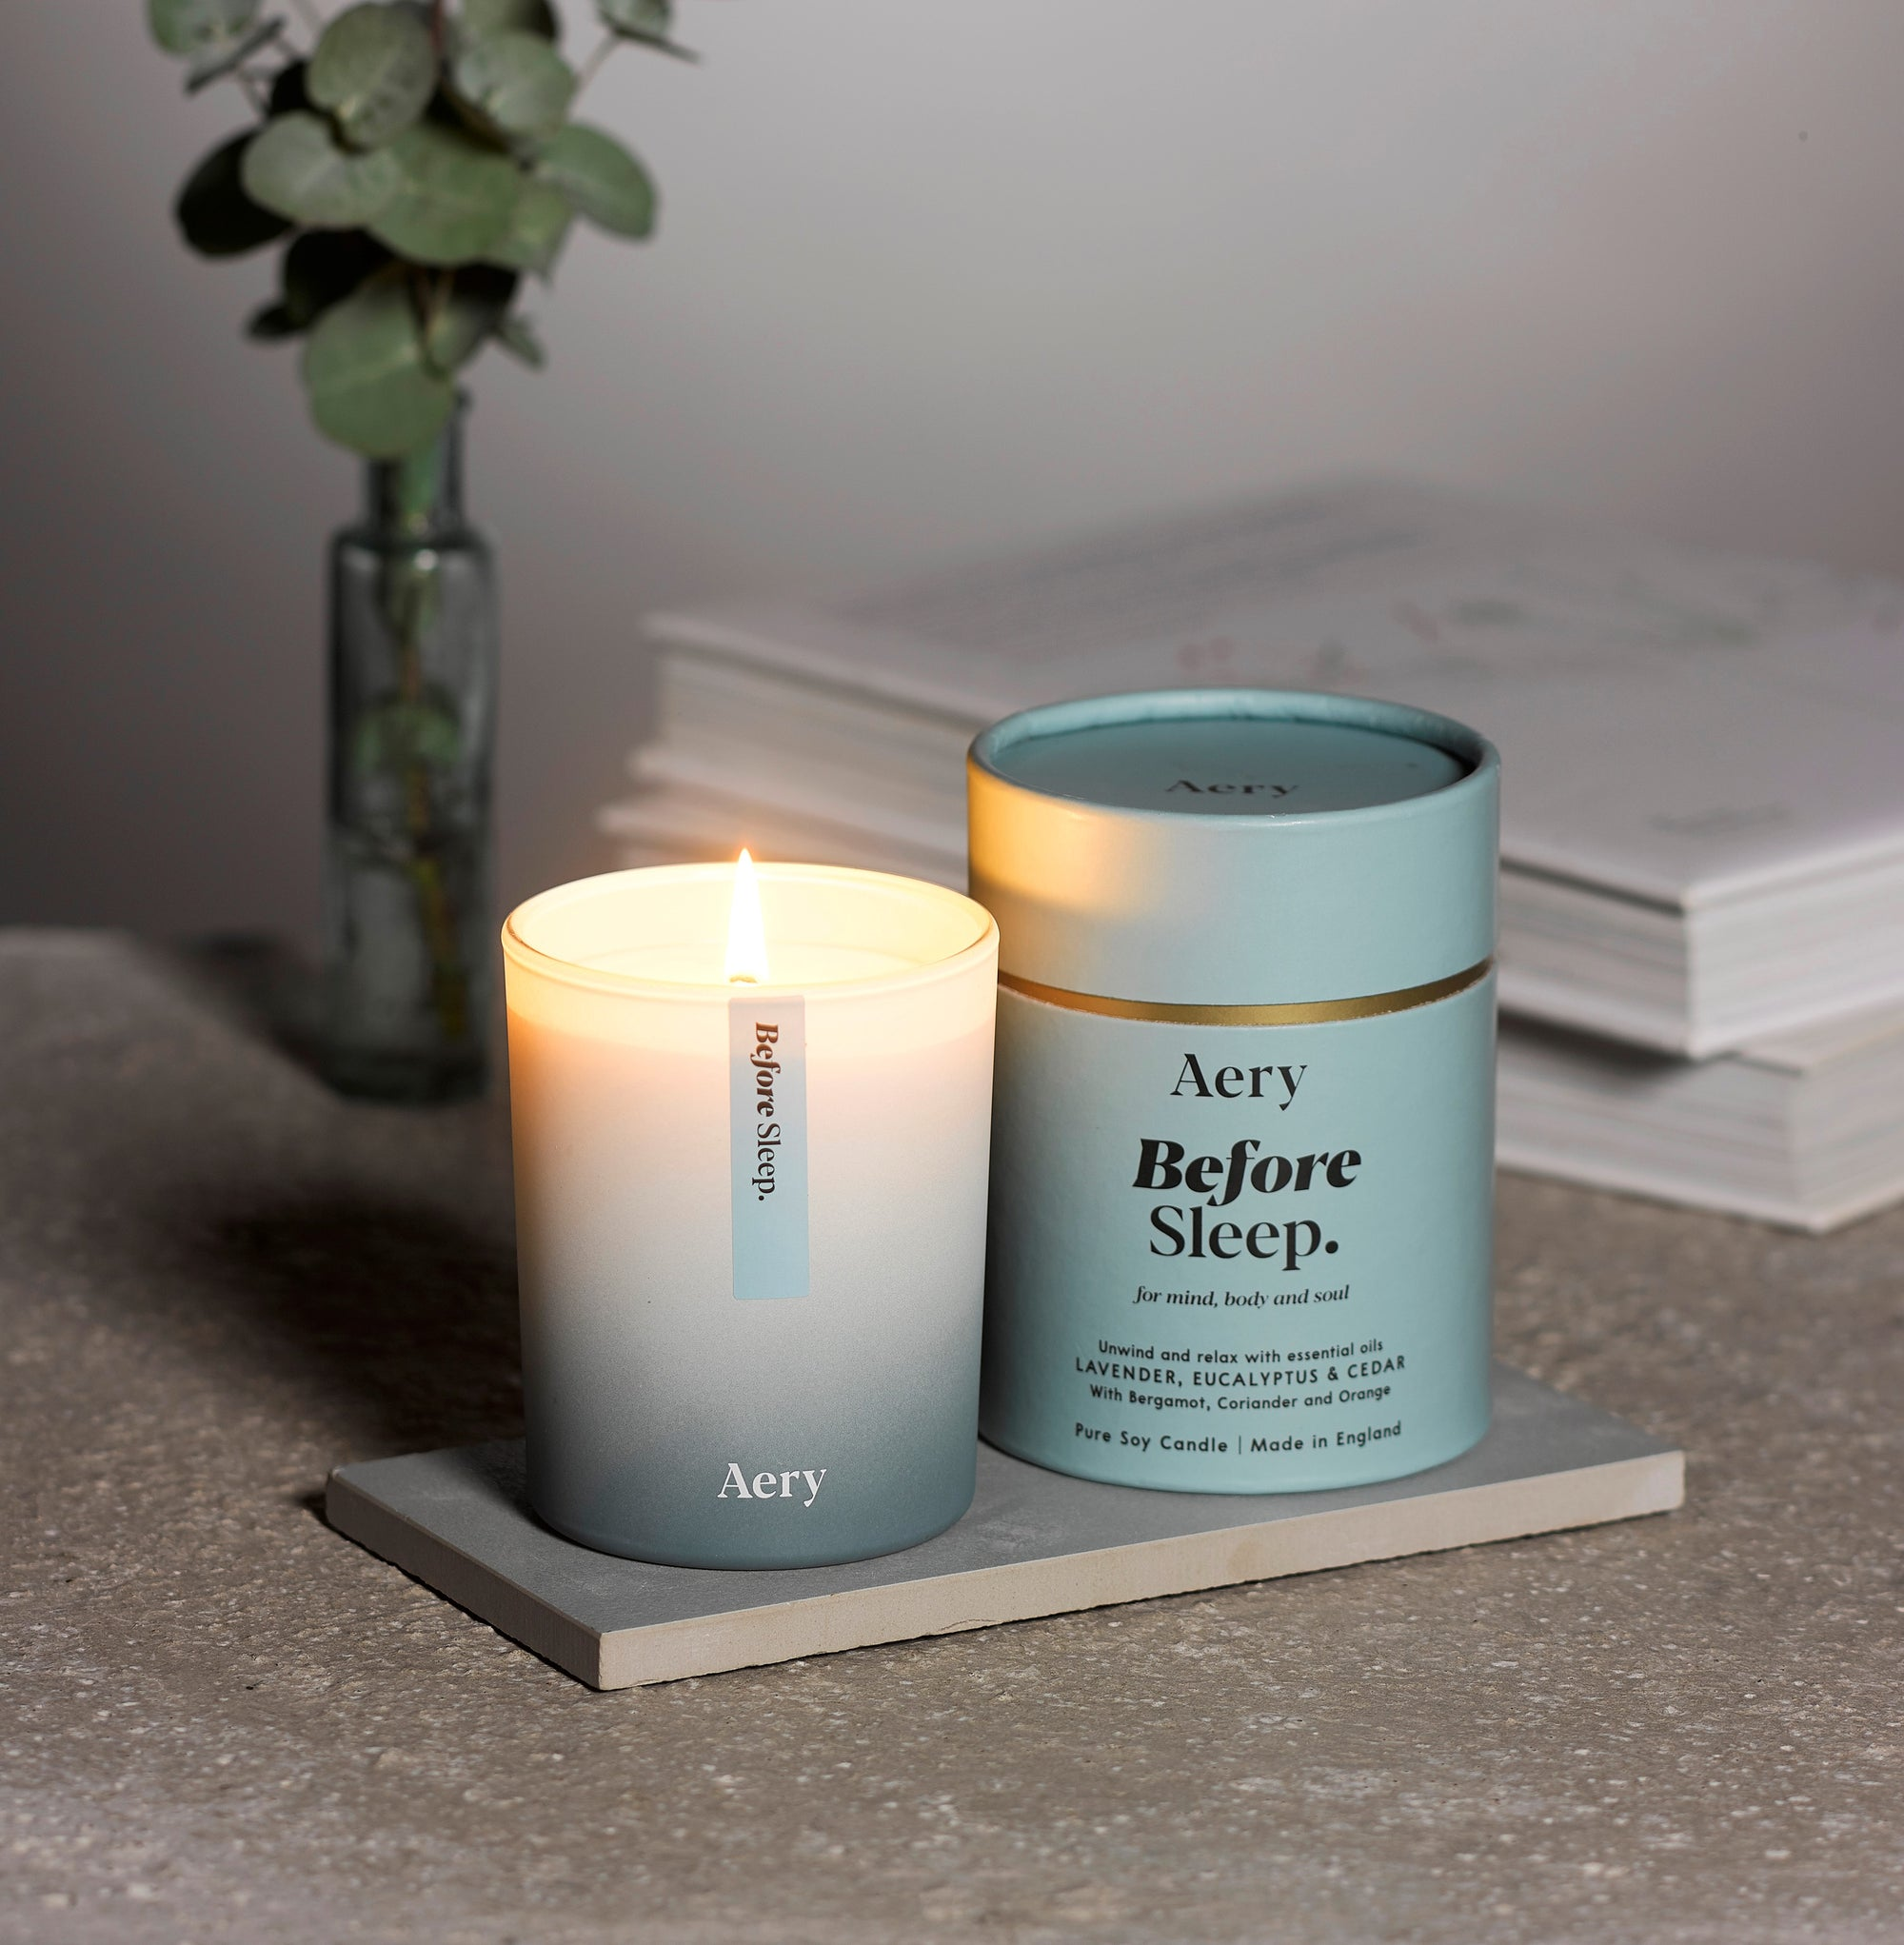 These Aery Candles & Diffusers are gorgeous environmentally conscious products. As well as this the candles are soy blend with a heavenly mix of essential oils to get you into the right mood.